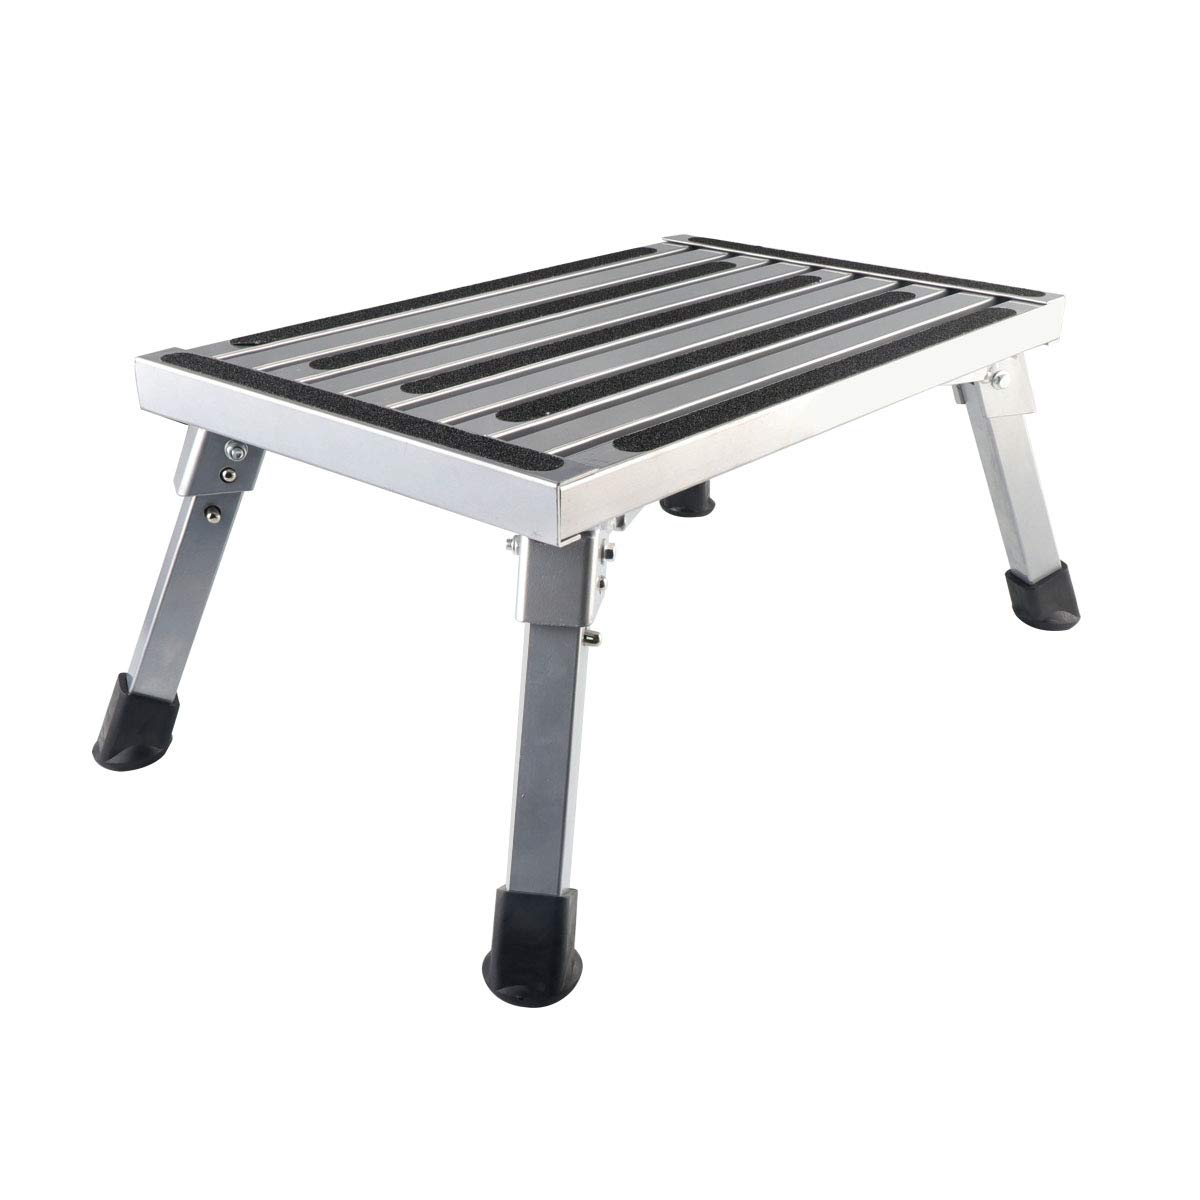 Gimify RV Steps Stool Folding Platform Stepping Stool Sturdy Aluminum Ladder with Non-Slip Rubber 450lb Capacity for Motorhome Trailer